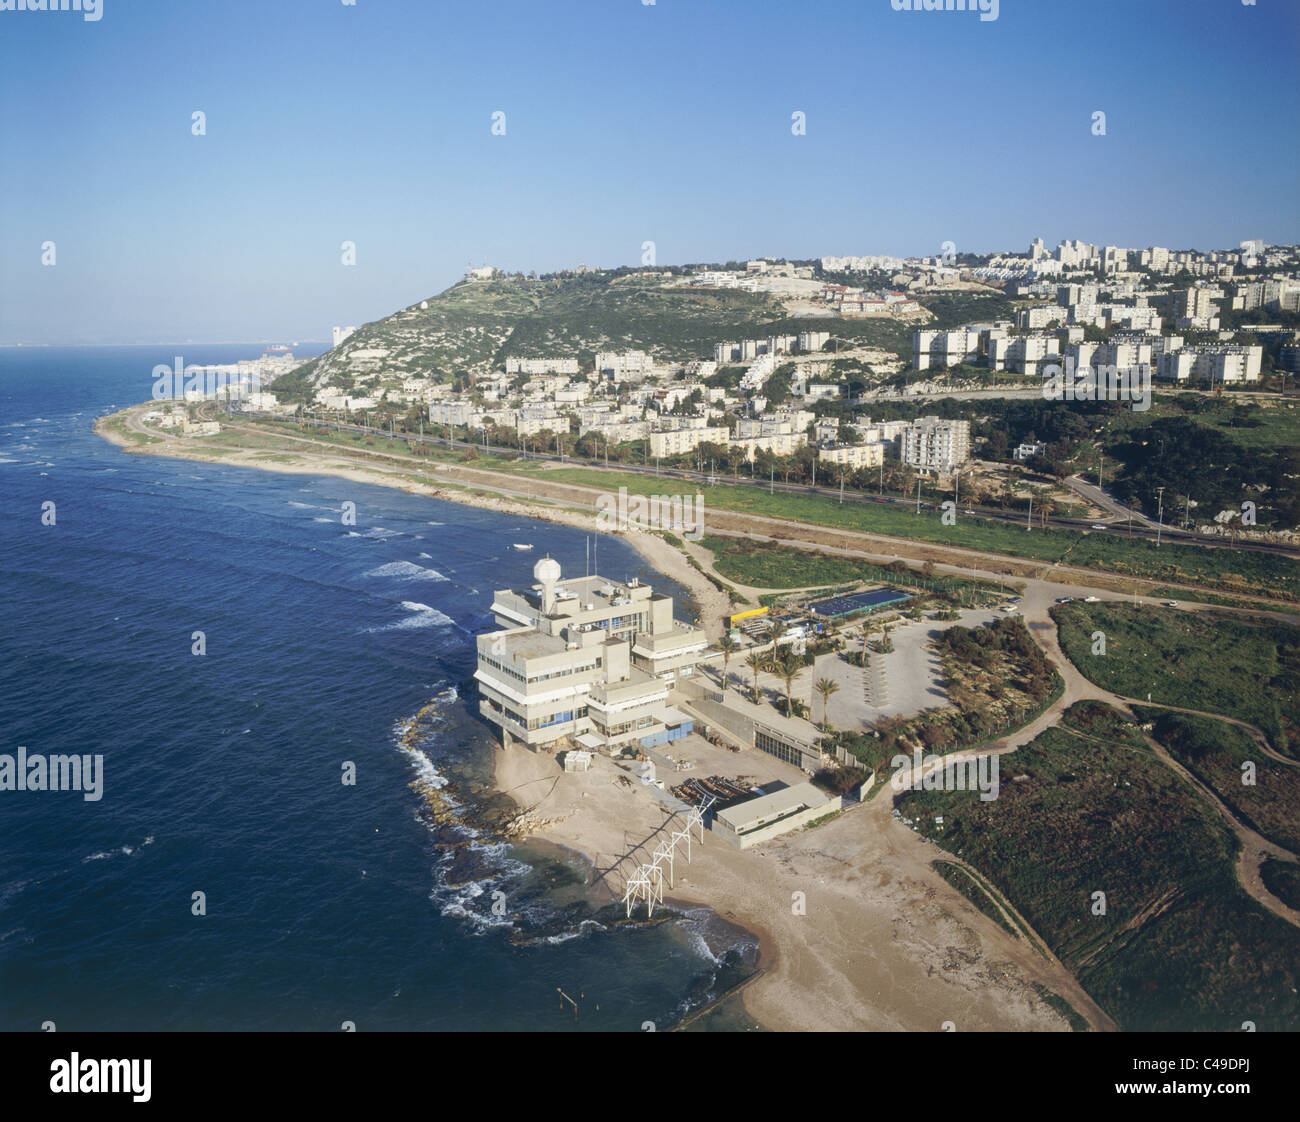 Aerial photograph of the Oceanographic Research Institution at the northern Entrance of Haifa - Stock Image